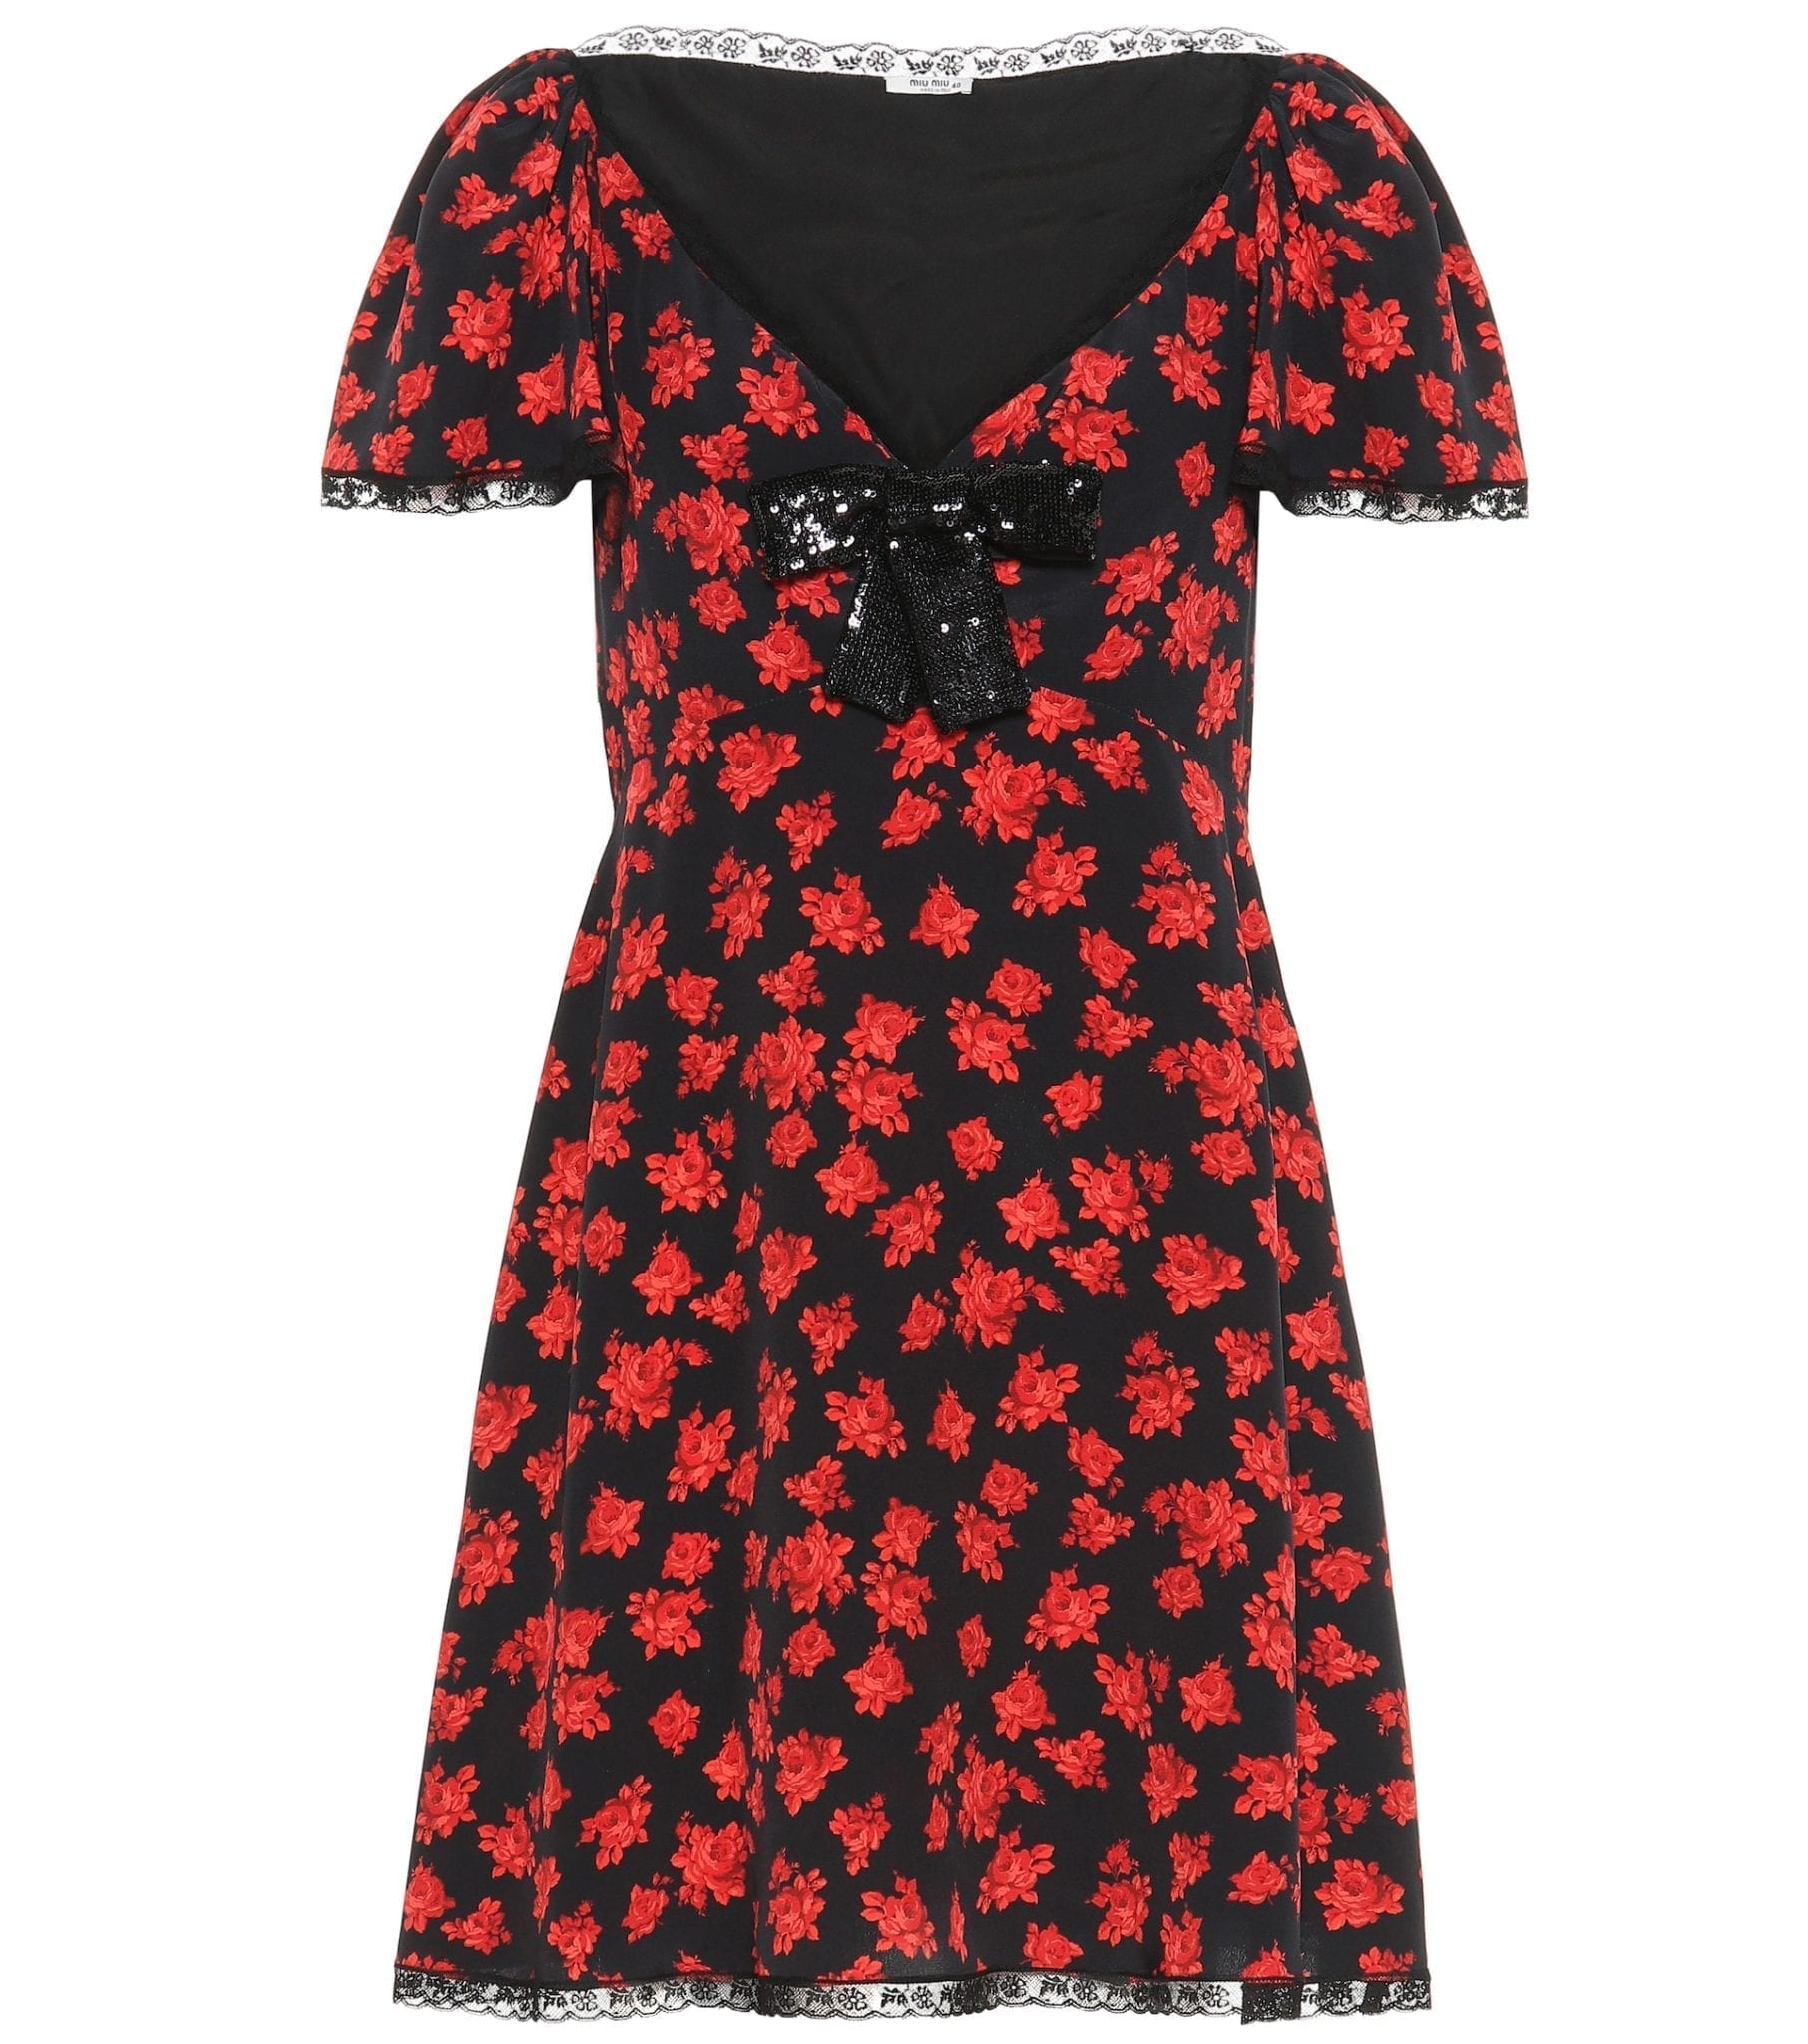 MIU MIU Floral Silk Mini Dress